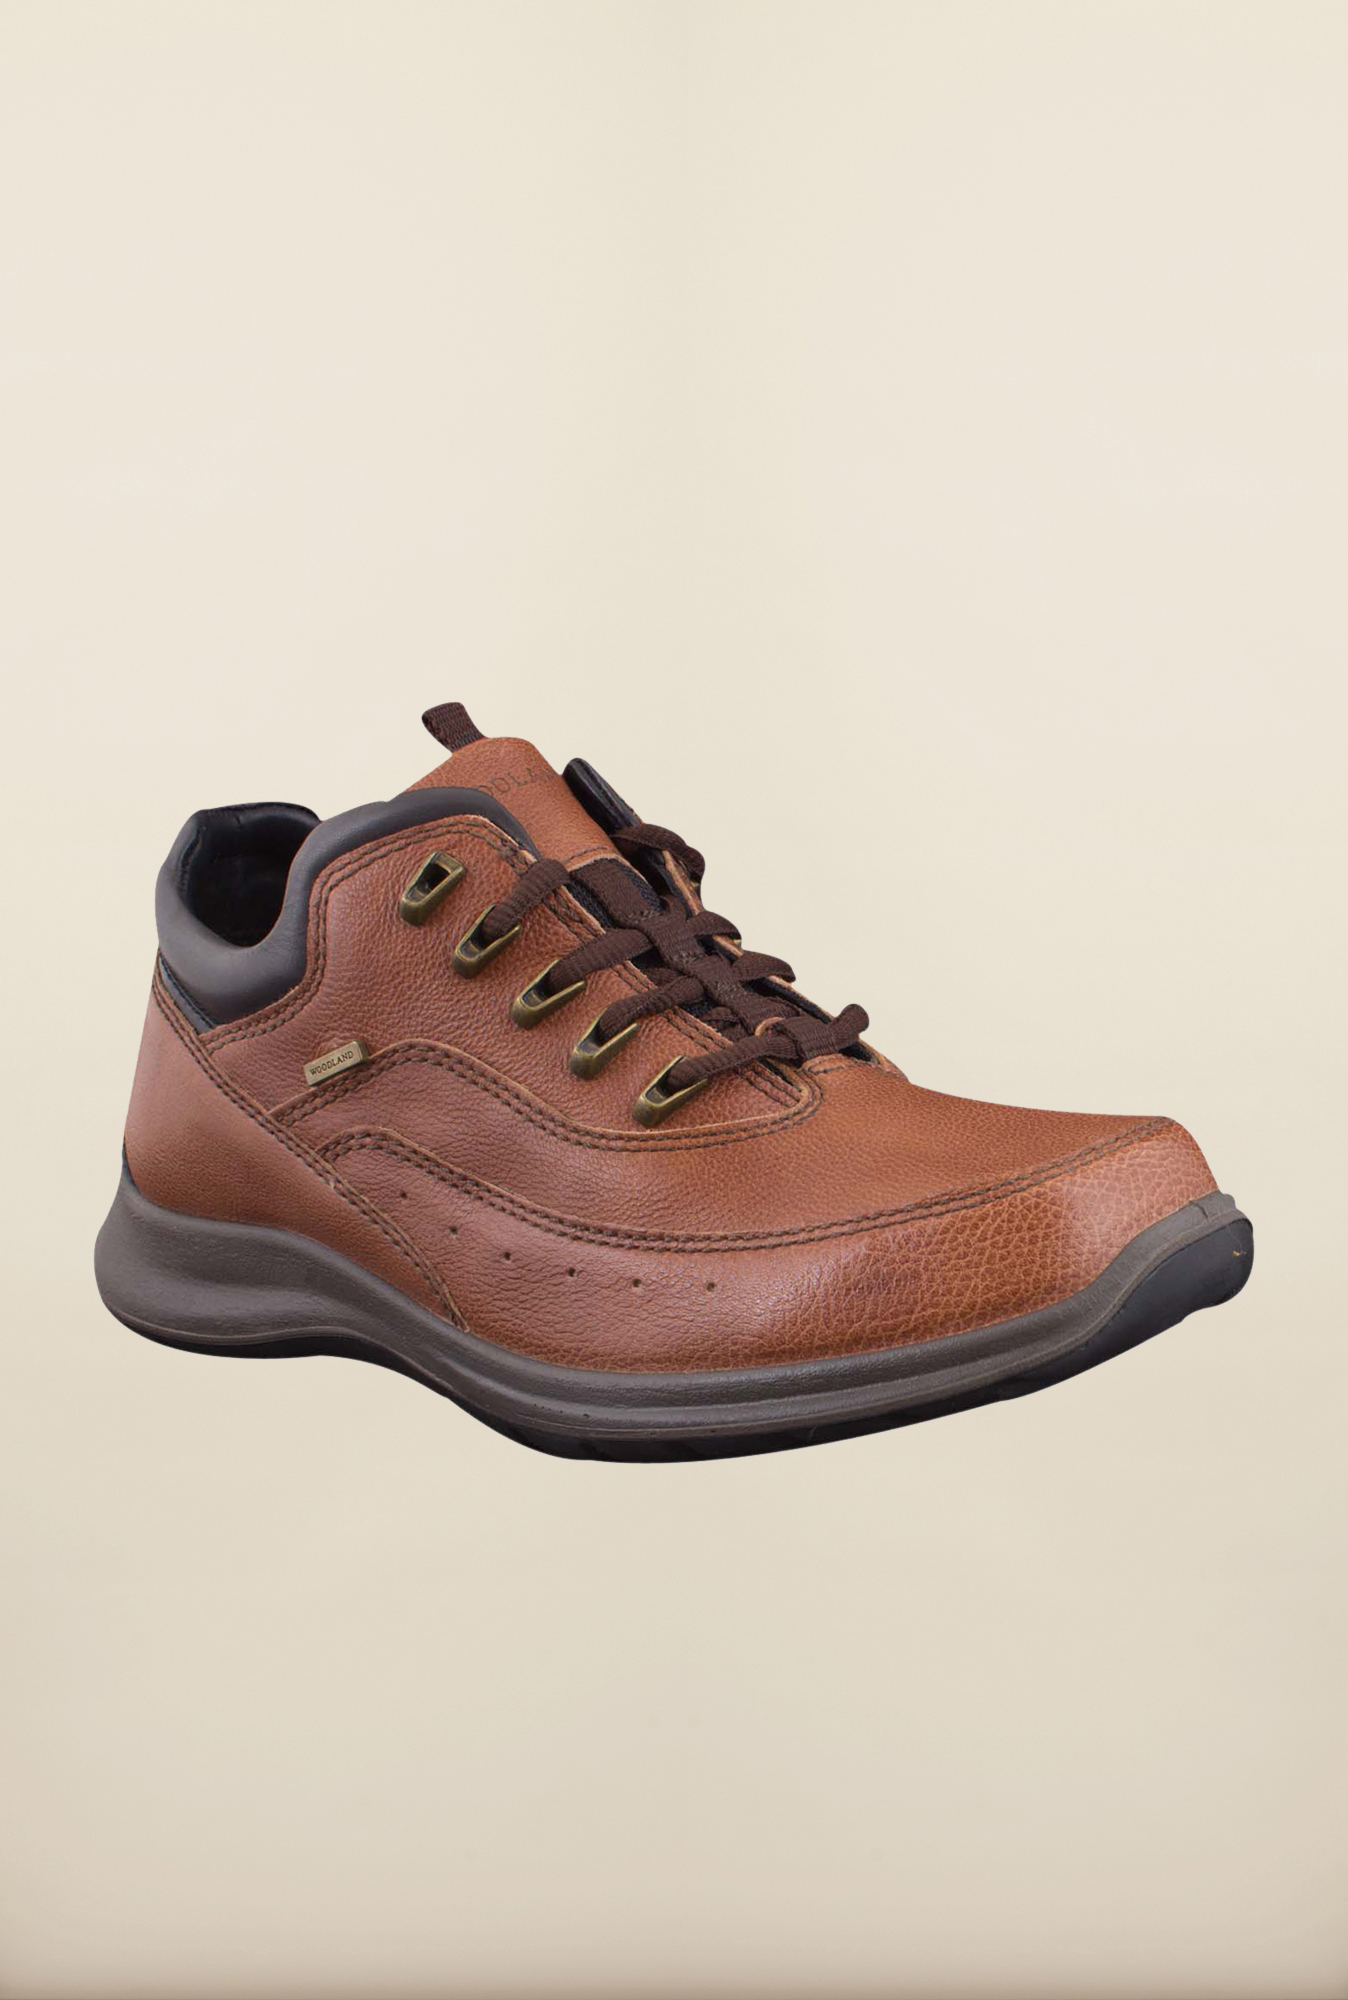 Woodland Shoes Online Purchase - wowkeyword.com